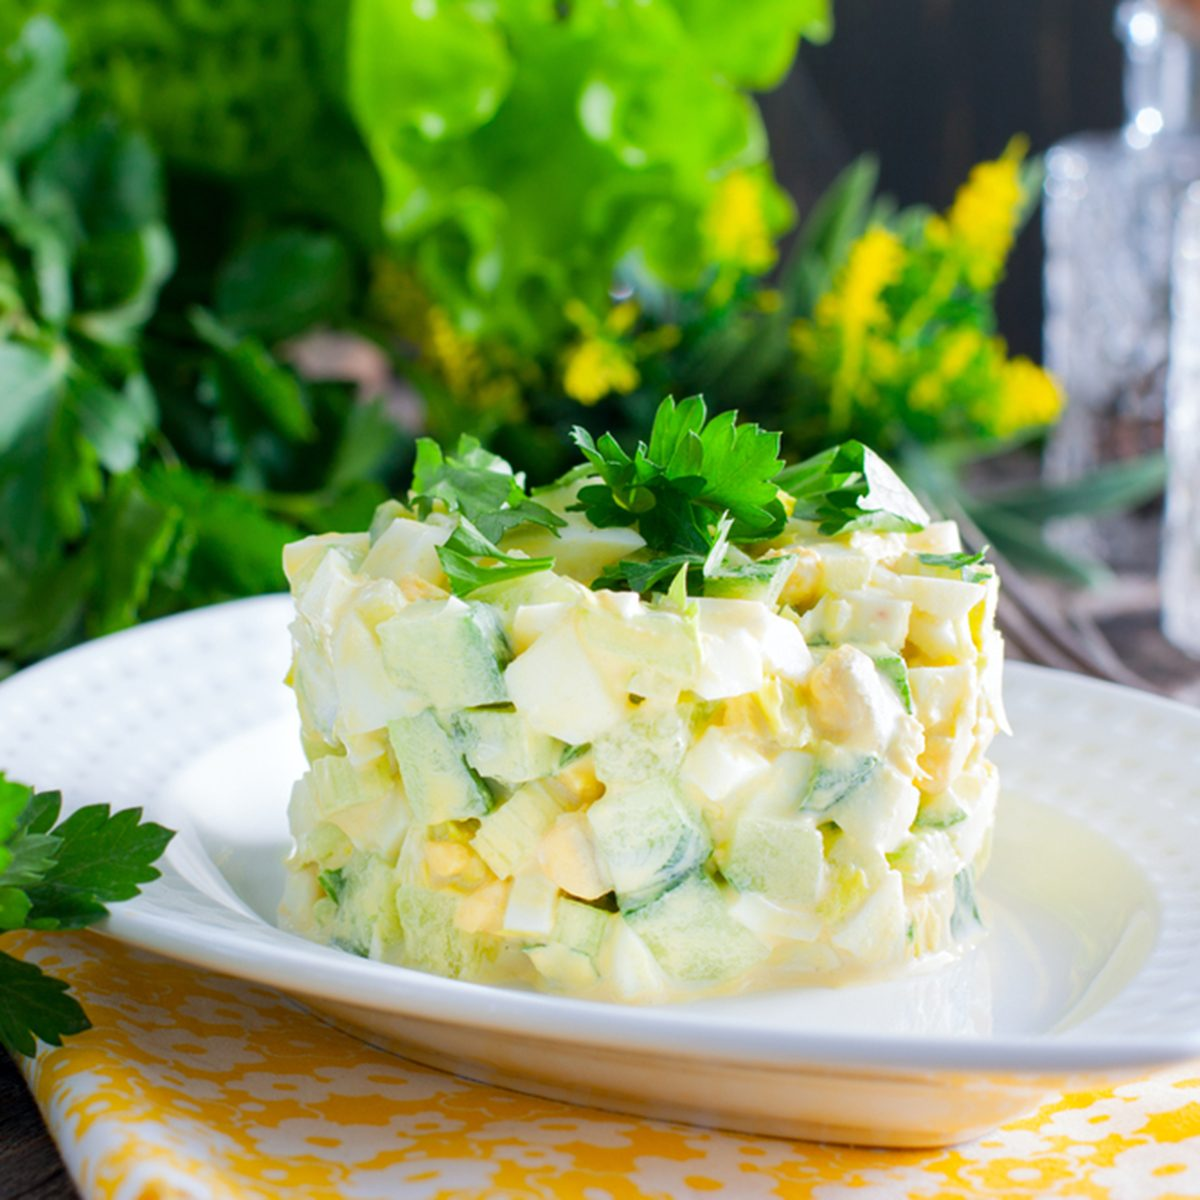 Salad with cucumber, celery and eggs on a wooden table